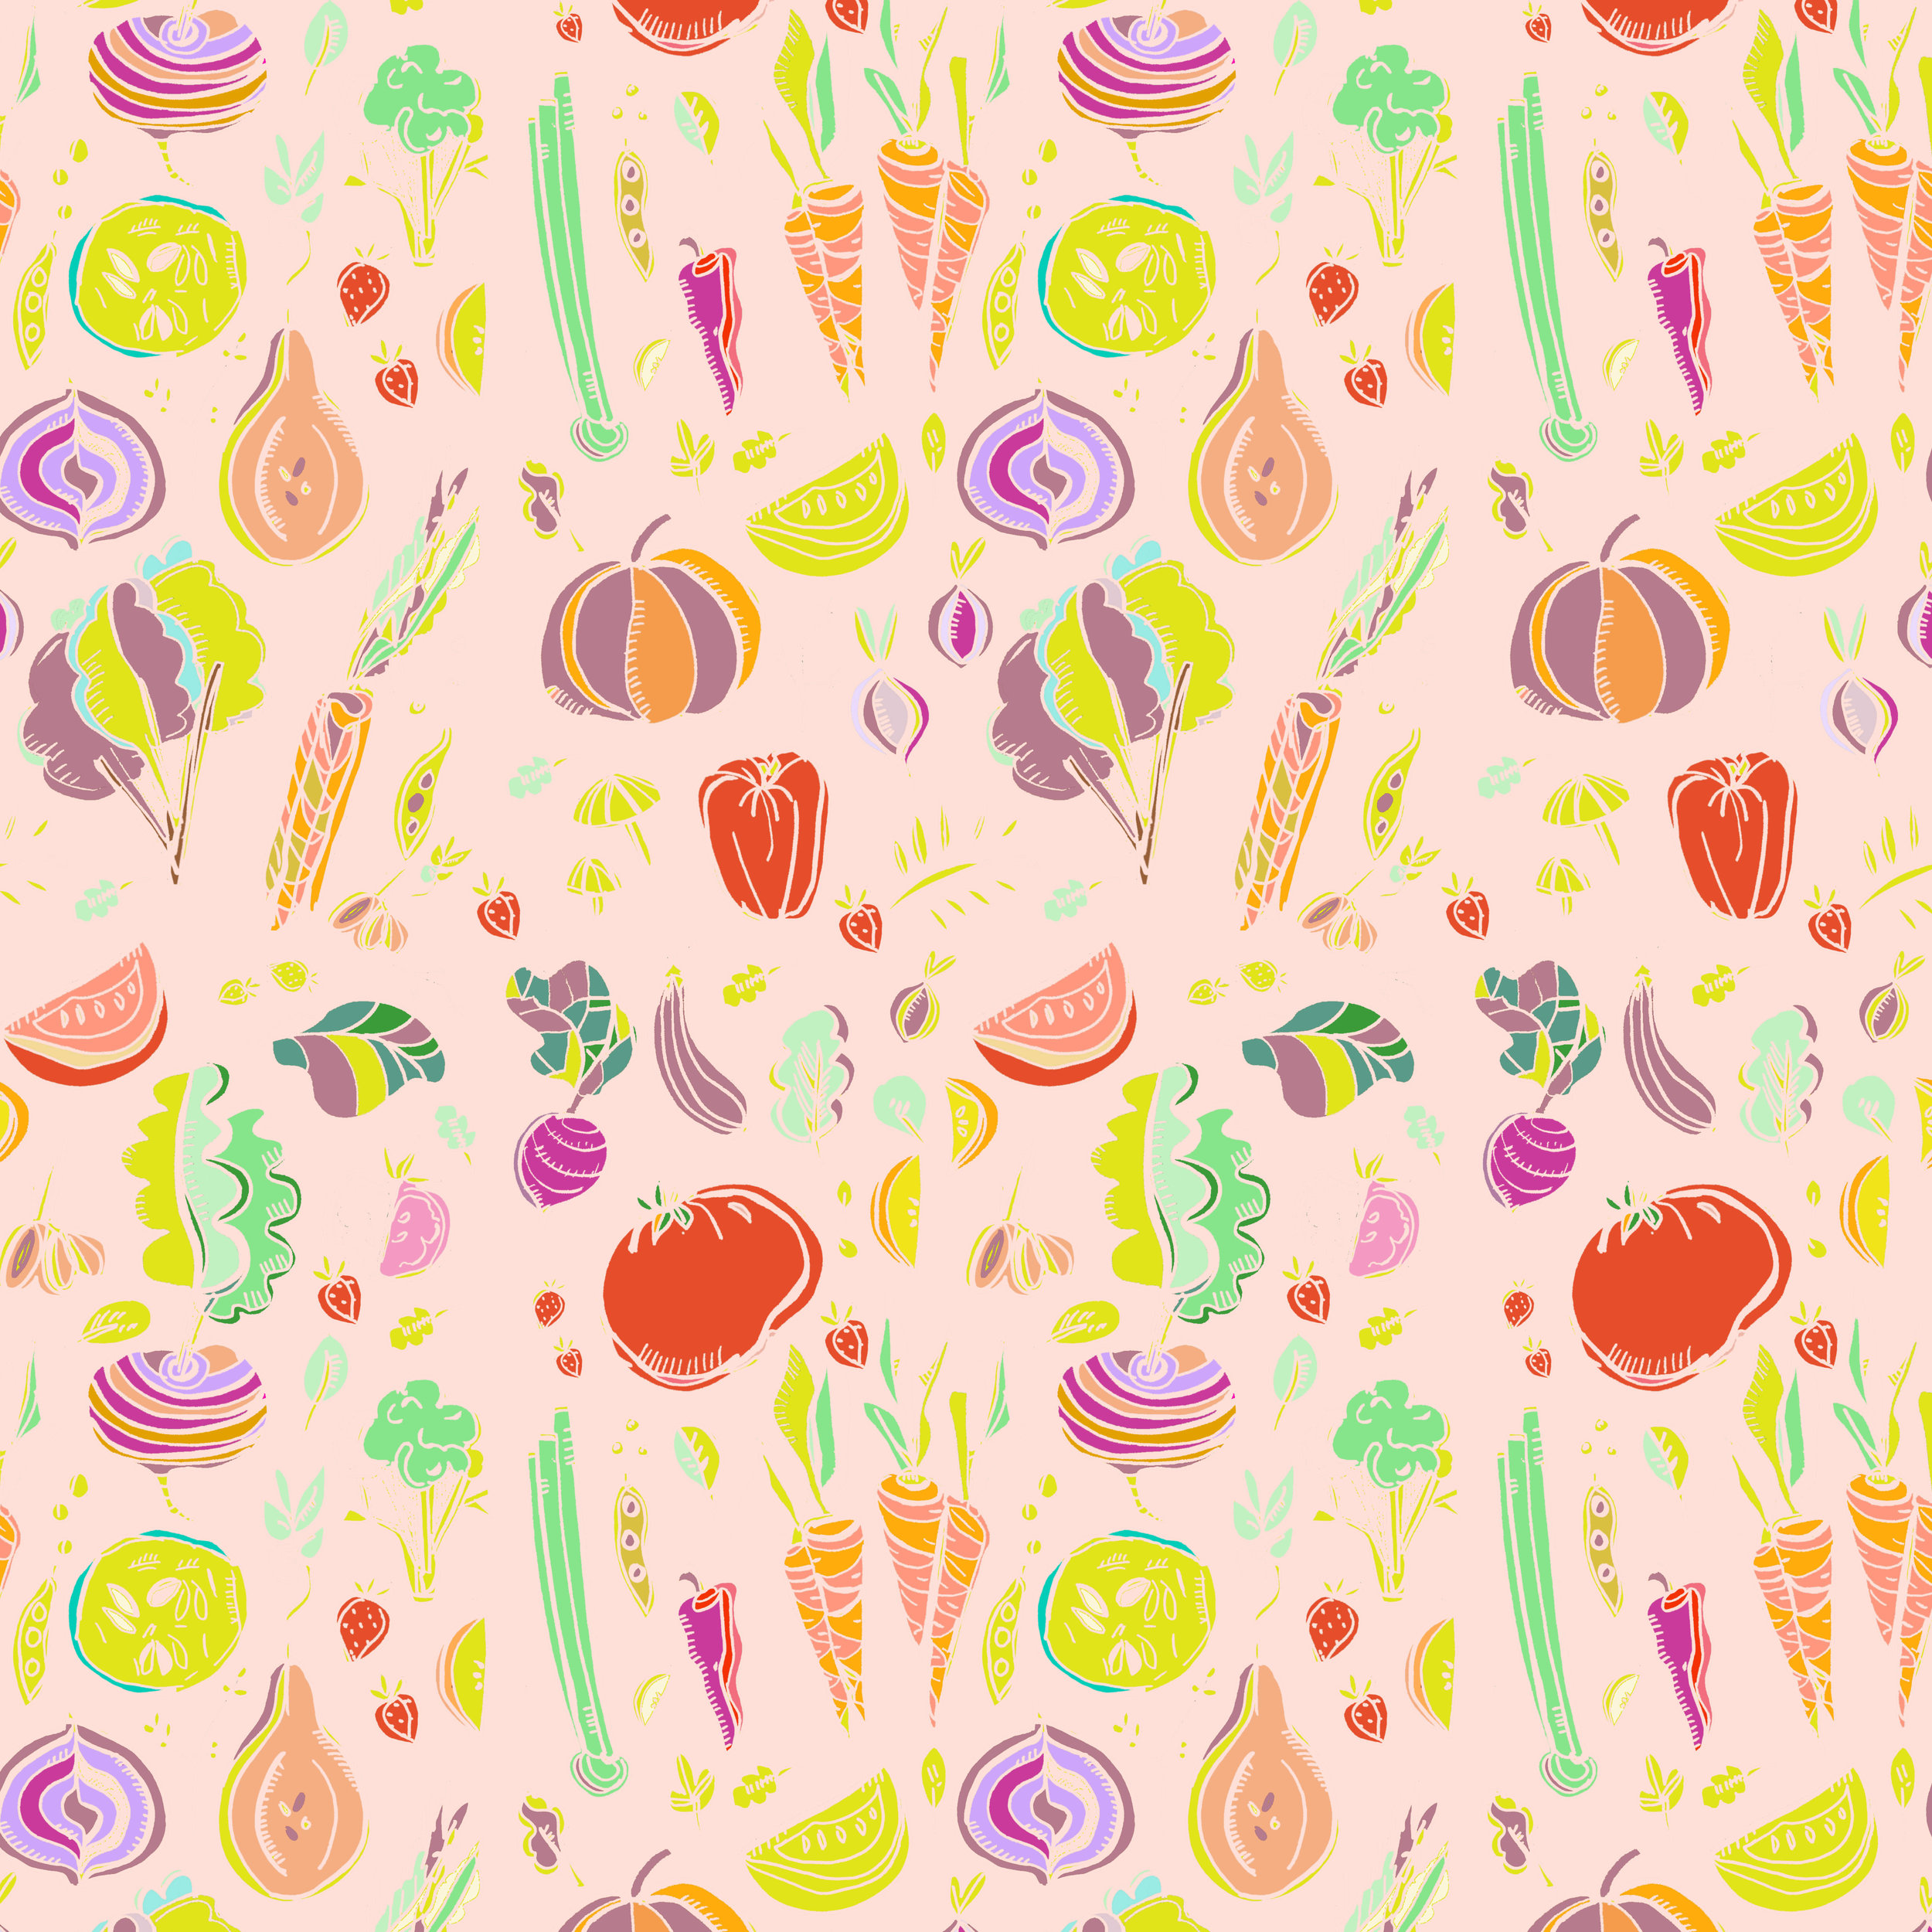 Pattern by  Lindsey Frances  | Download it for free  here